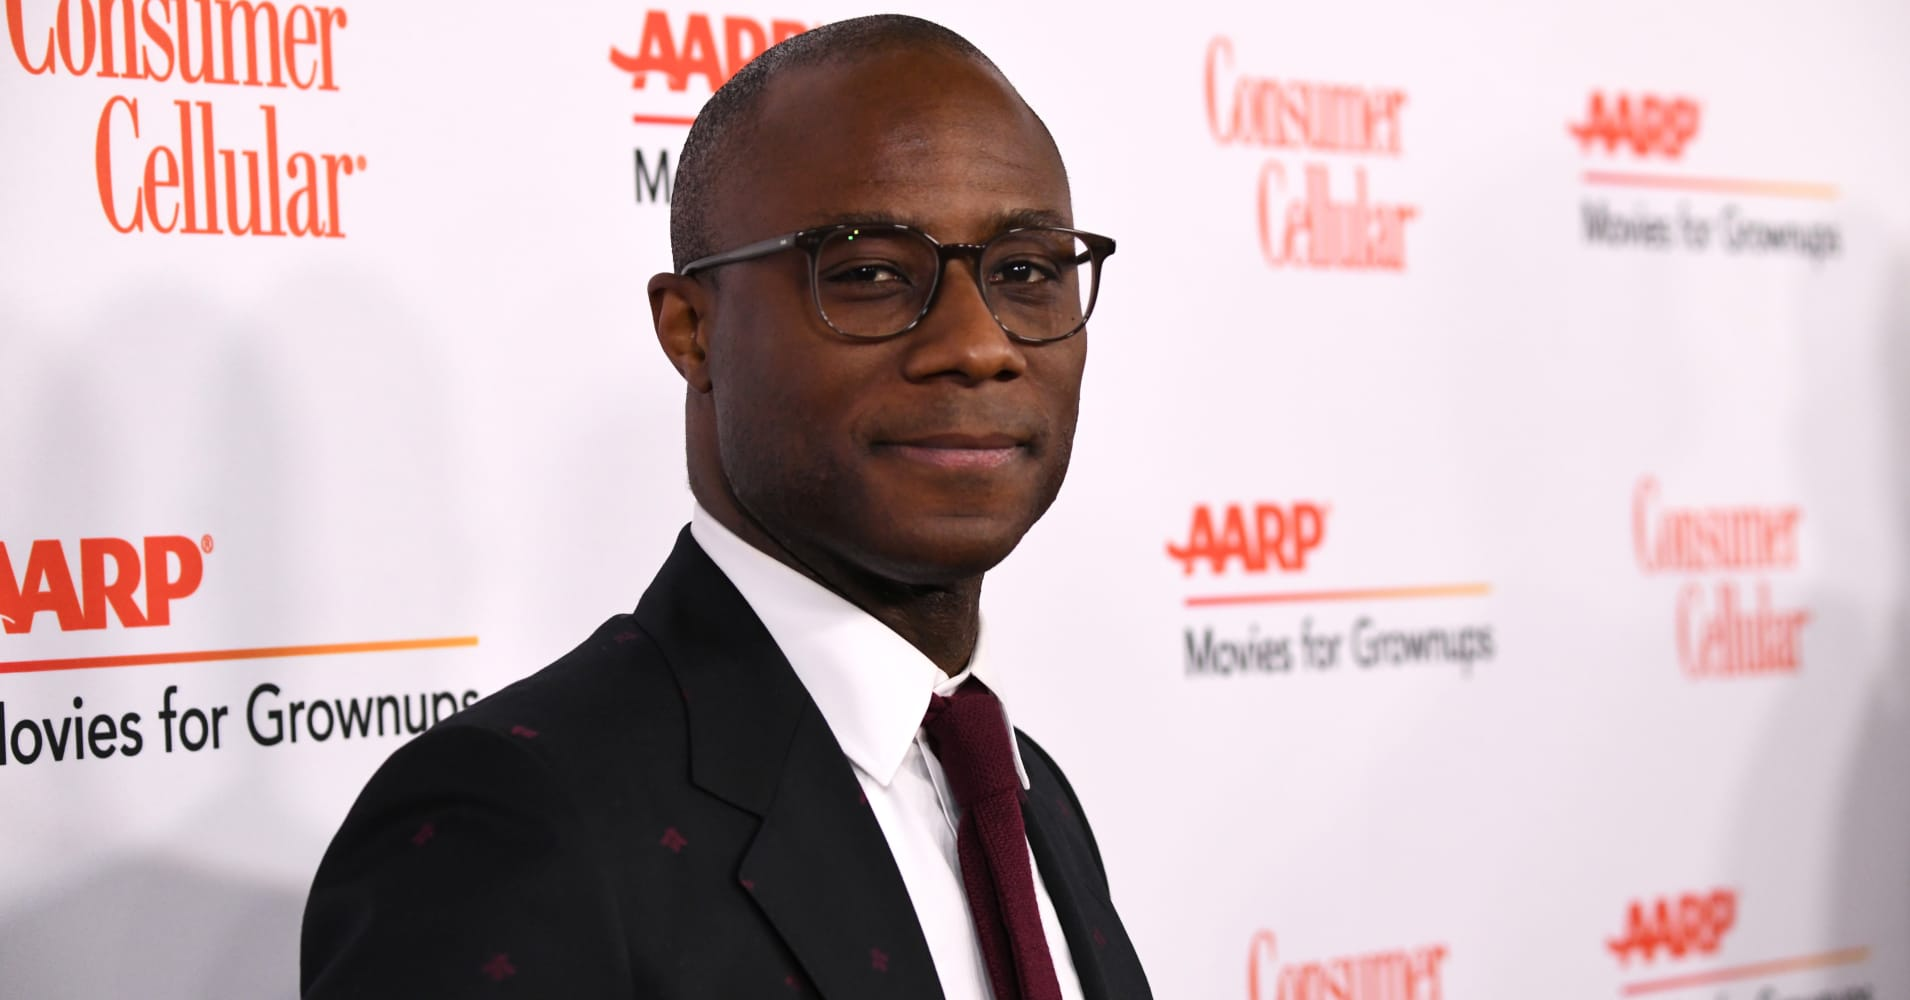 Barry Jenkins attends AARP The Magazine's 18th Annual Movies for Grownups Awards at the Beverly Wilshire Four Seasons Hotel on February 04, 2019 in Beverly Hills, California.